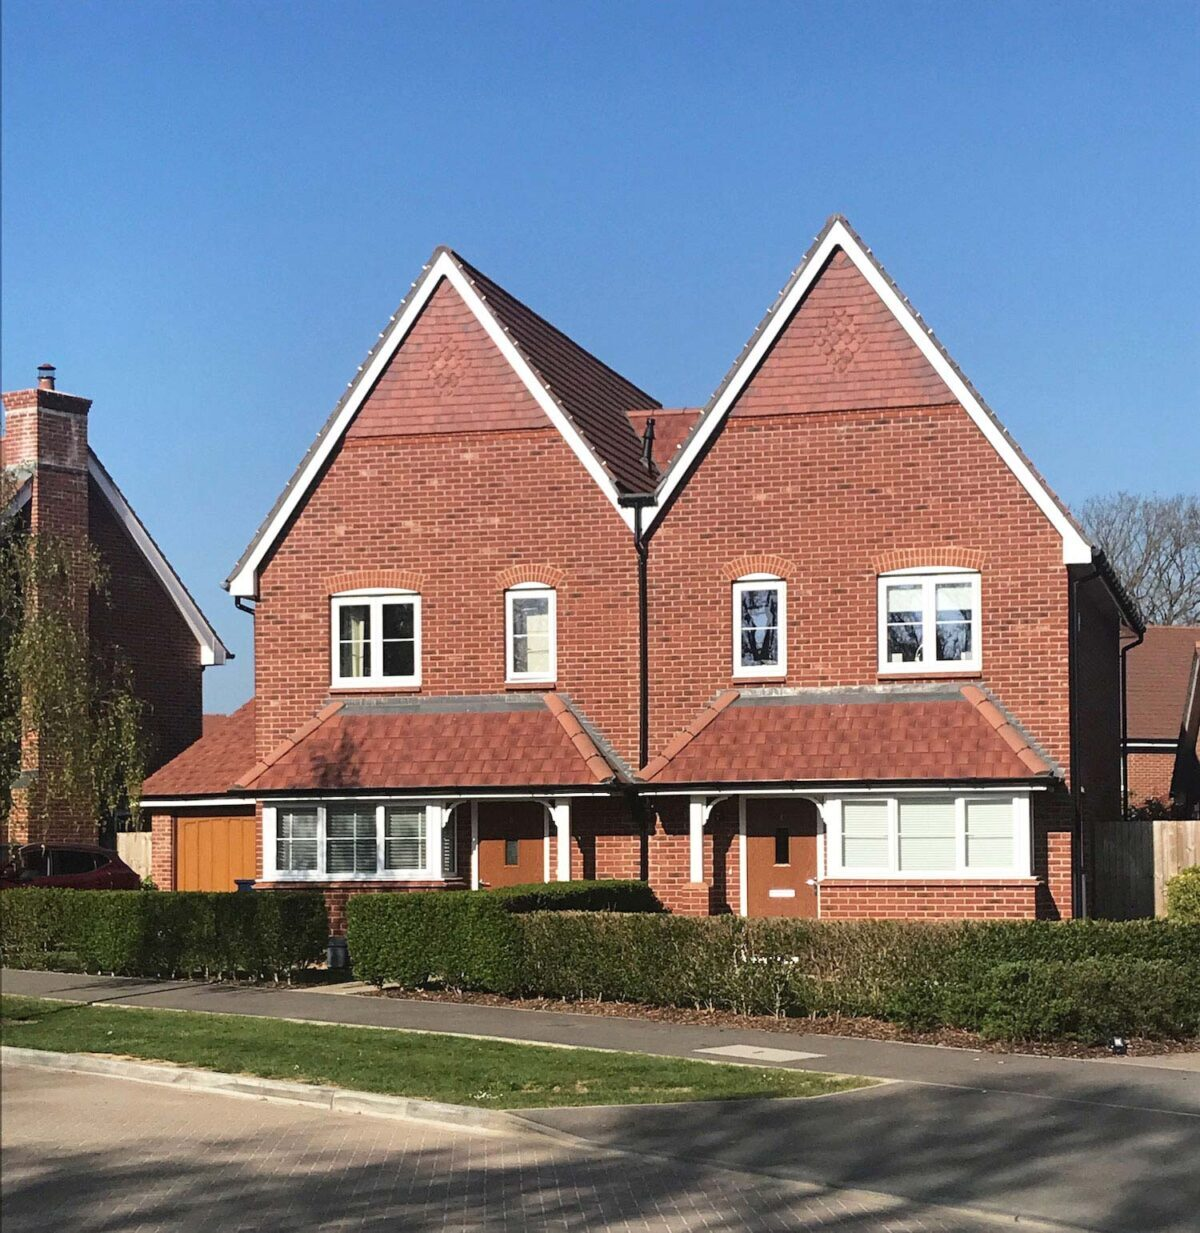 Semi detached houses are a popular type of house in the UK